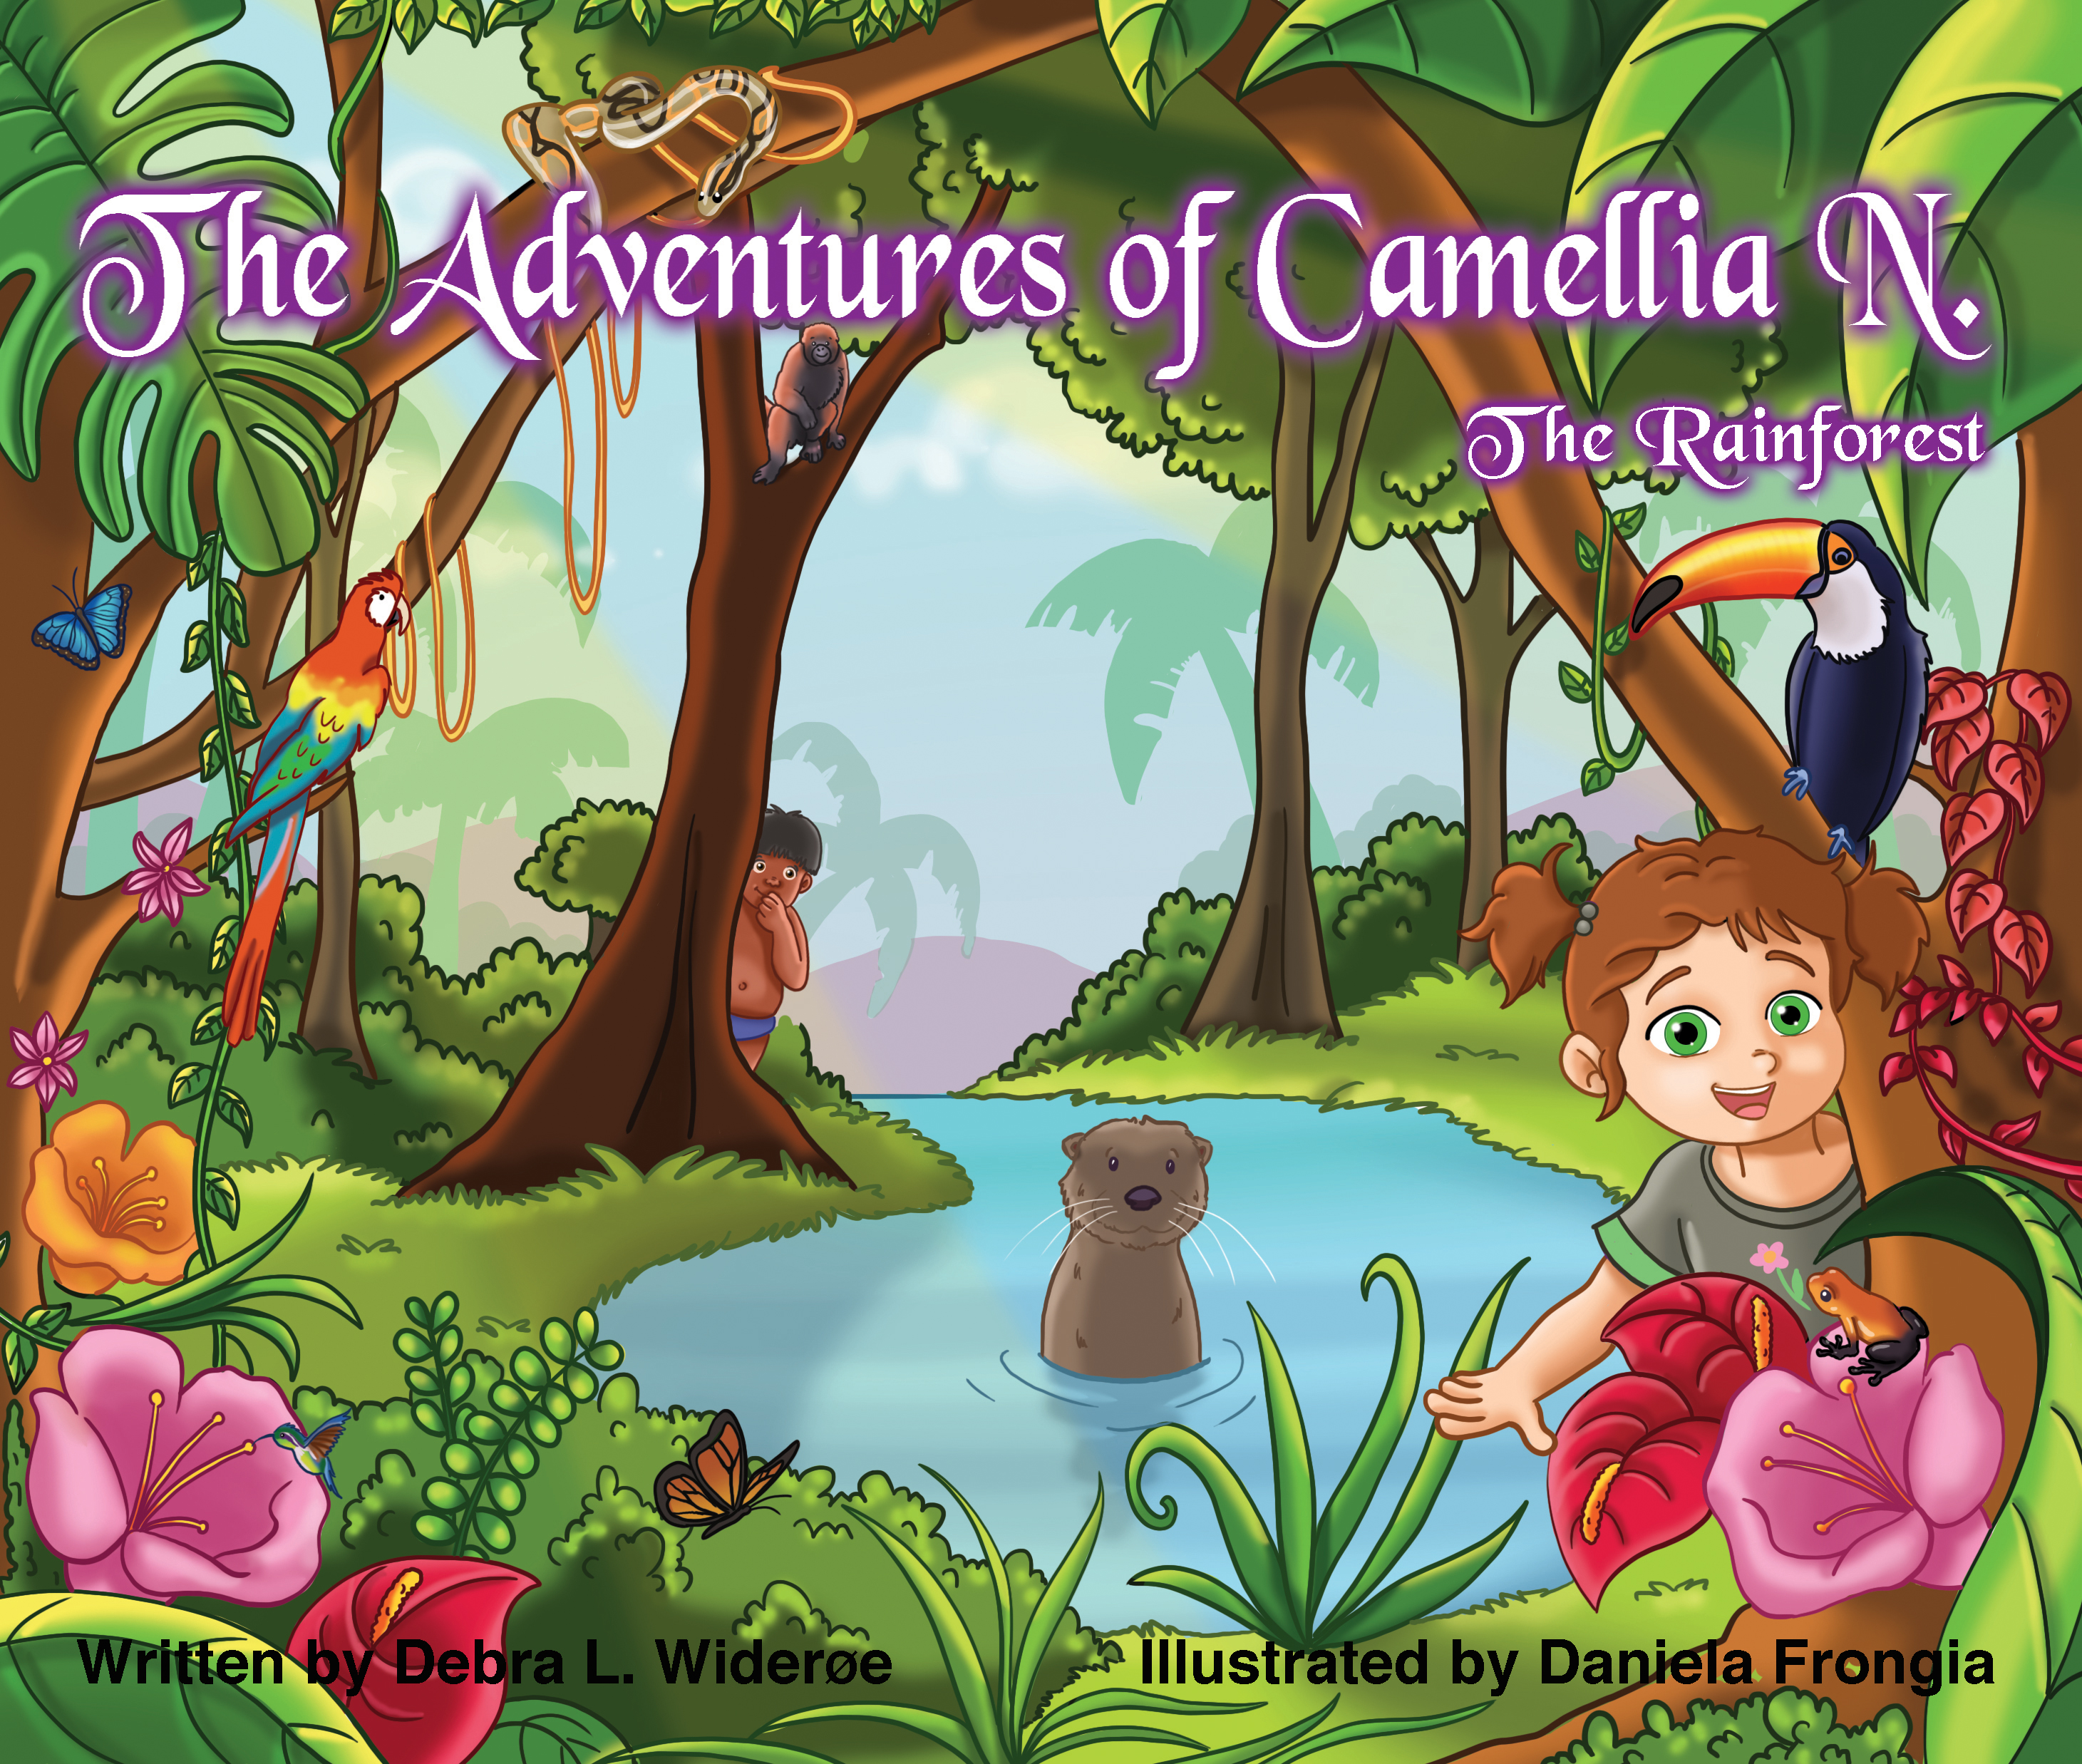 The Adventures of Camellia N.; The Rainforest